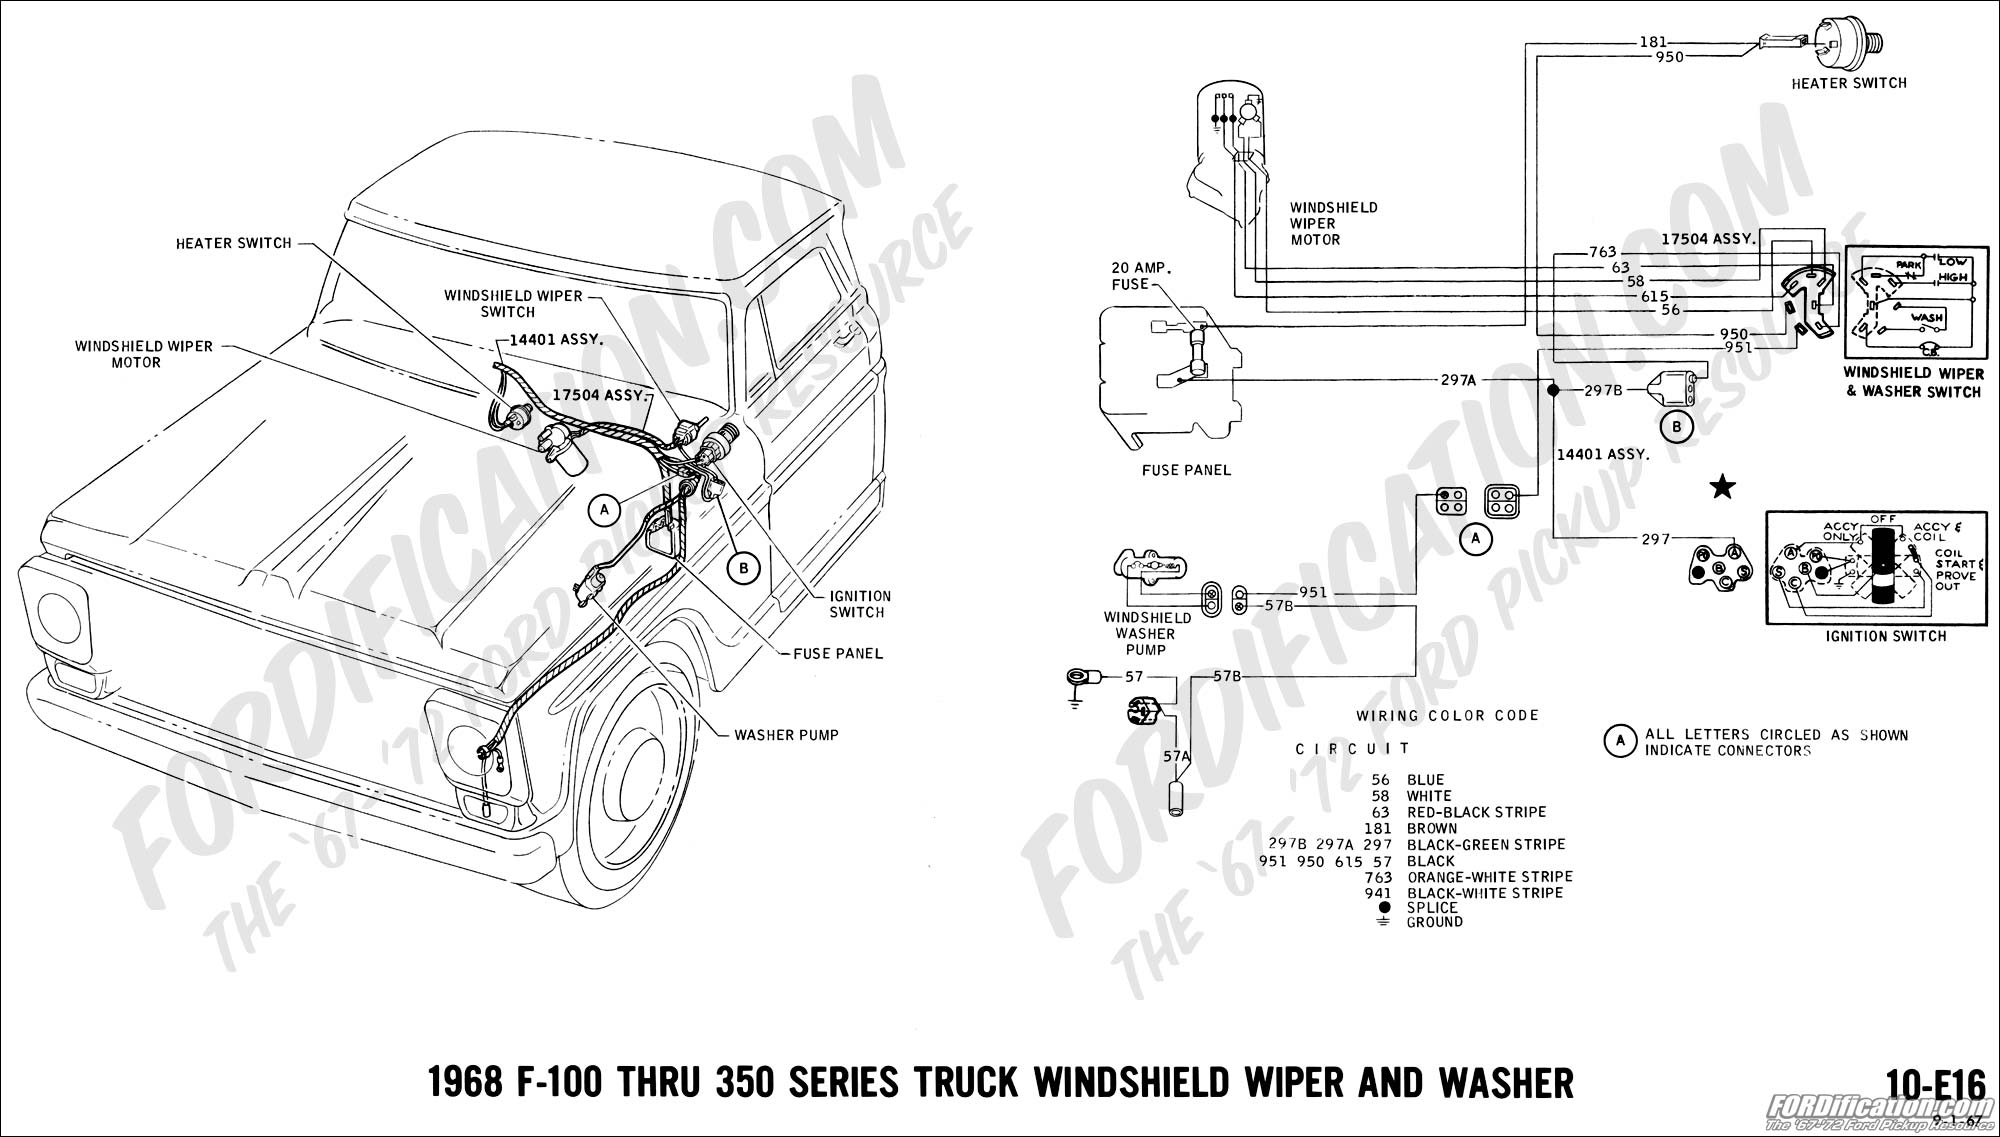 Windshield Washer Wiring Diagram Peterbilt on 2012 honda wiring diagram, 2012 peterbilt models, peterbilt parts diagram, 2003 international 4400 electrical diagram, 2012 gmc wiring diagram, peterbilt engine diagram, peterbilt transmission diagram, 2012 ud wiring diagram, 2012 international truck wiring diagram, 2012 peterbilt tractor, 2012 mazda 3 wiring diagram, 2012 peterbilt manual, 2012 ford wiring diagram, peterbilt fuel diagram, peterbilt ignition diagram, 2012 arctic cat wiring diagram, 2012 chrysler wiring diagram, 2012 club car wiring diagram, peterbilt fuse panel diagram, 2012 dodge wiring diagram,